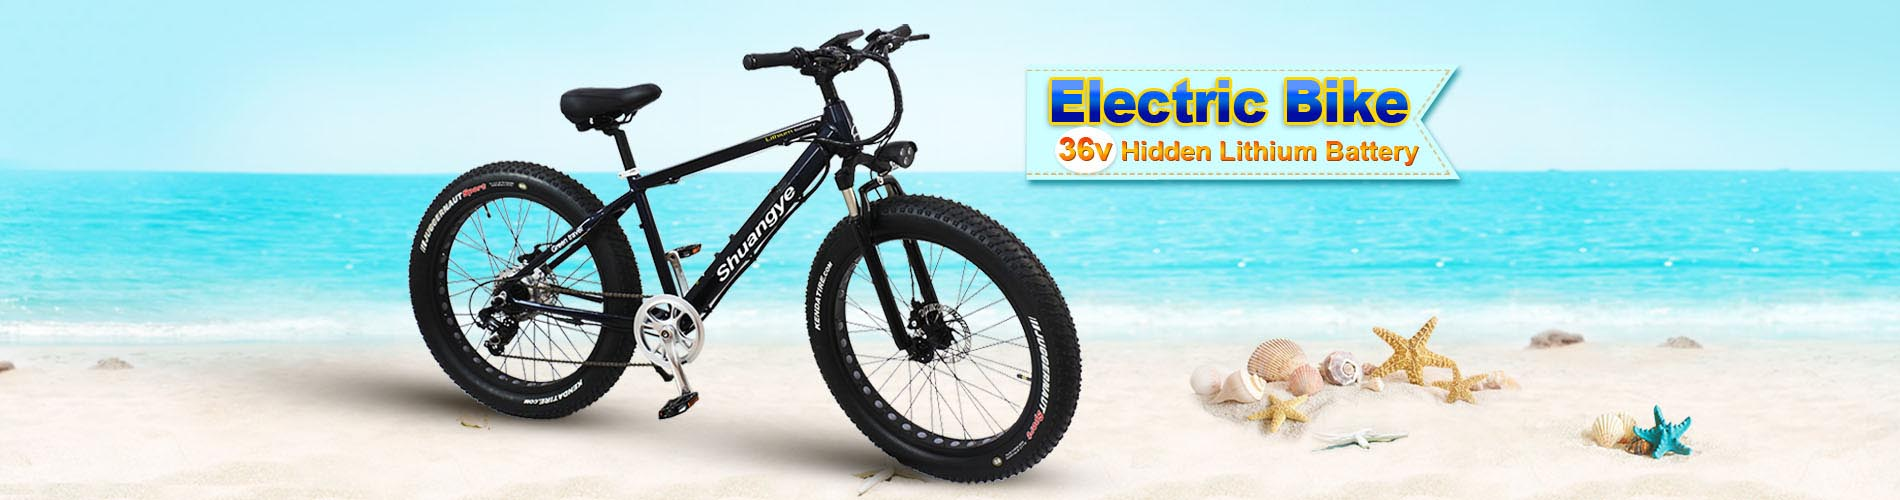 newest full suspension electric mountain bike A6AH26-S